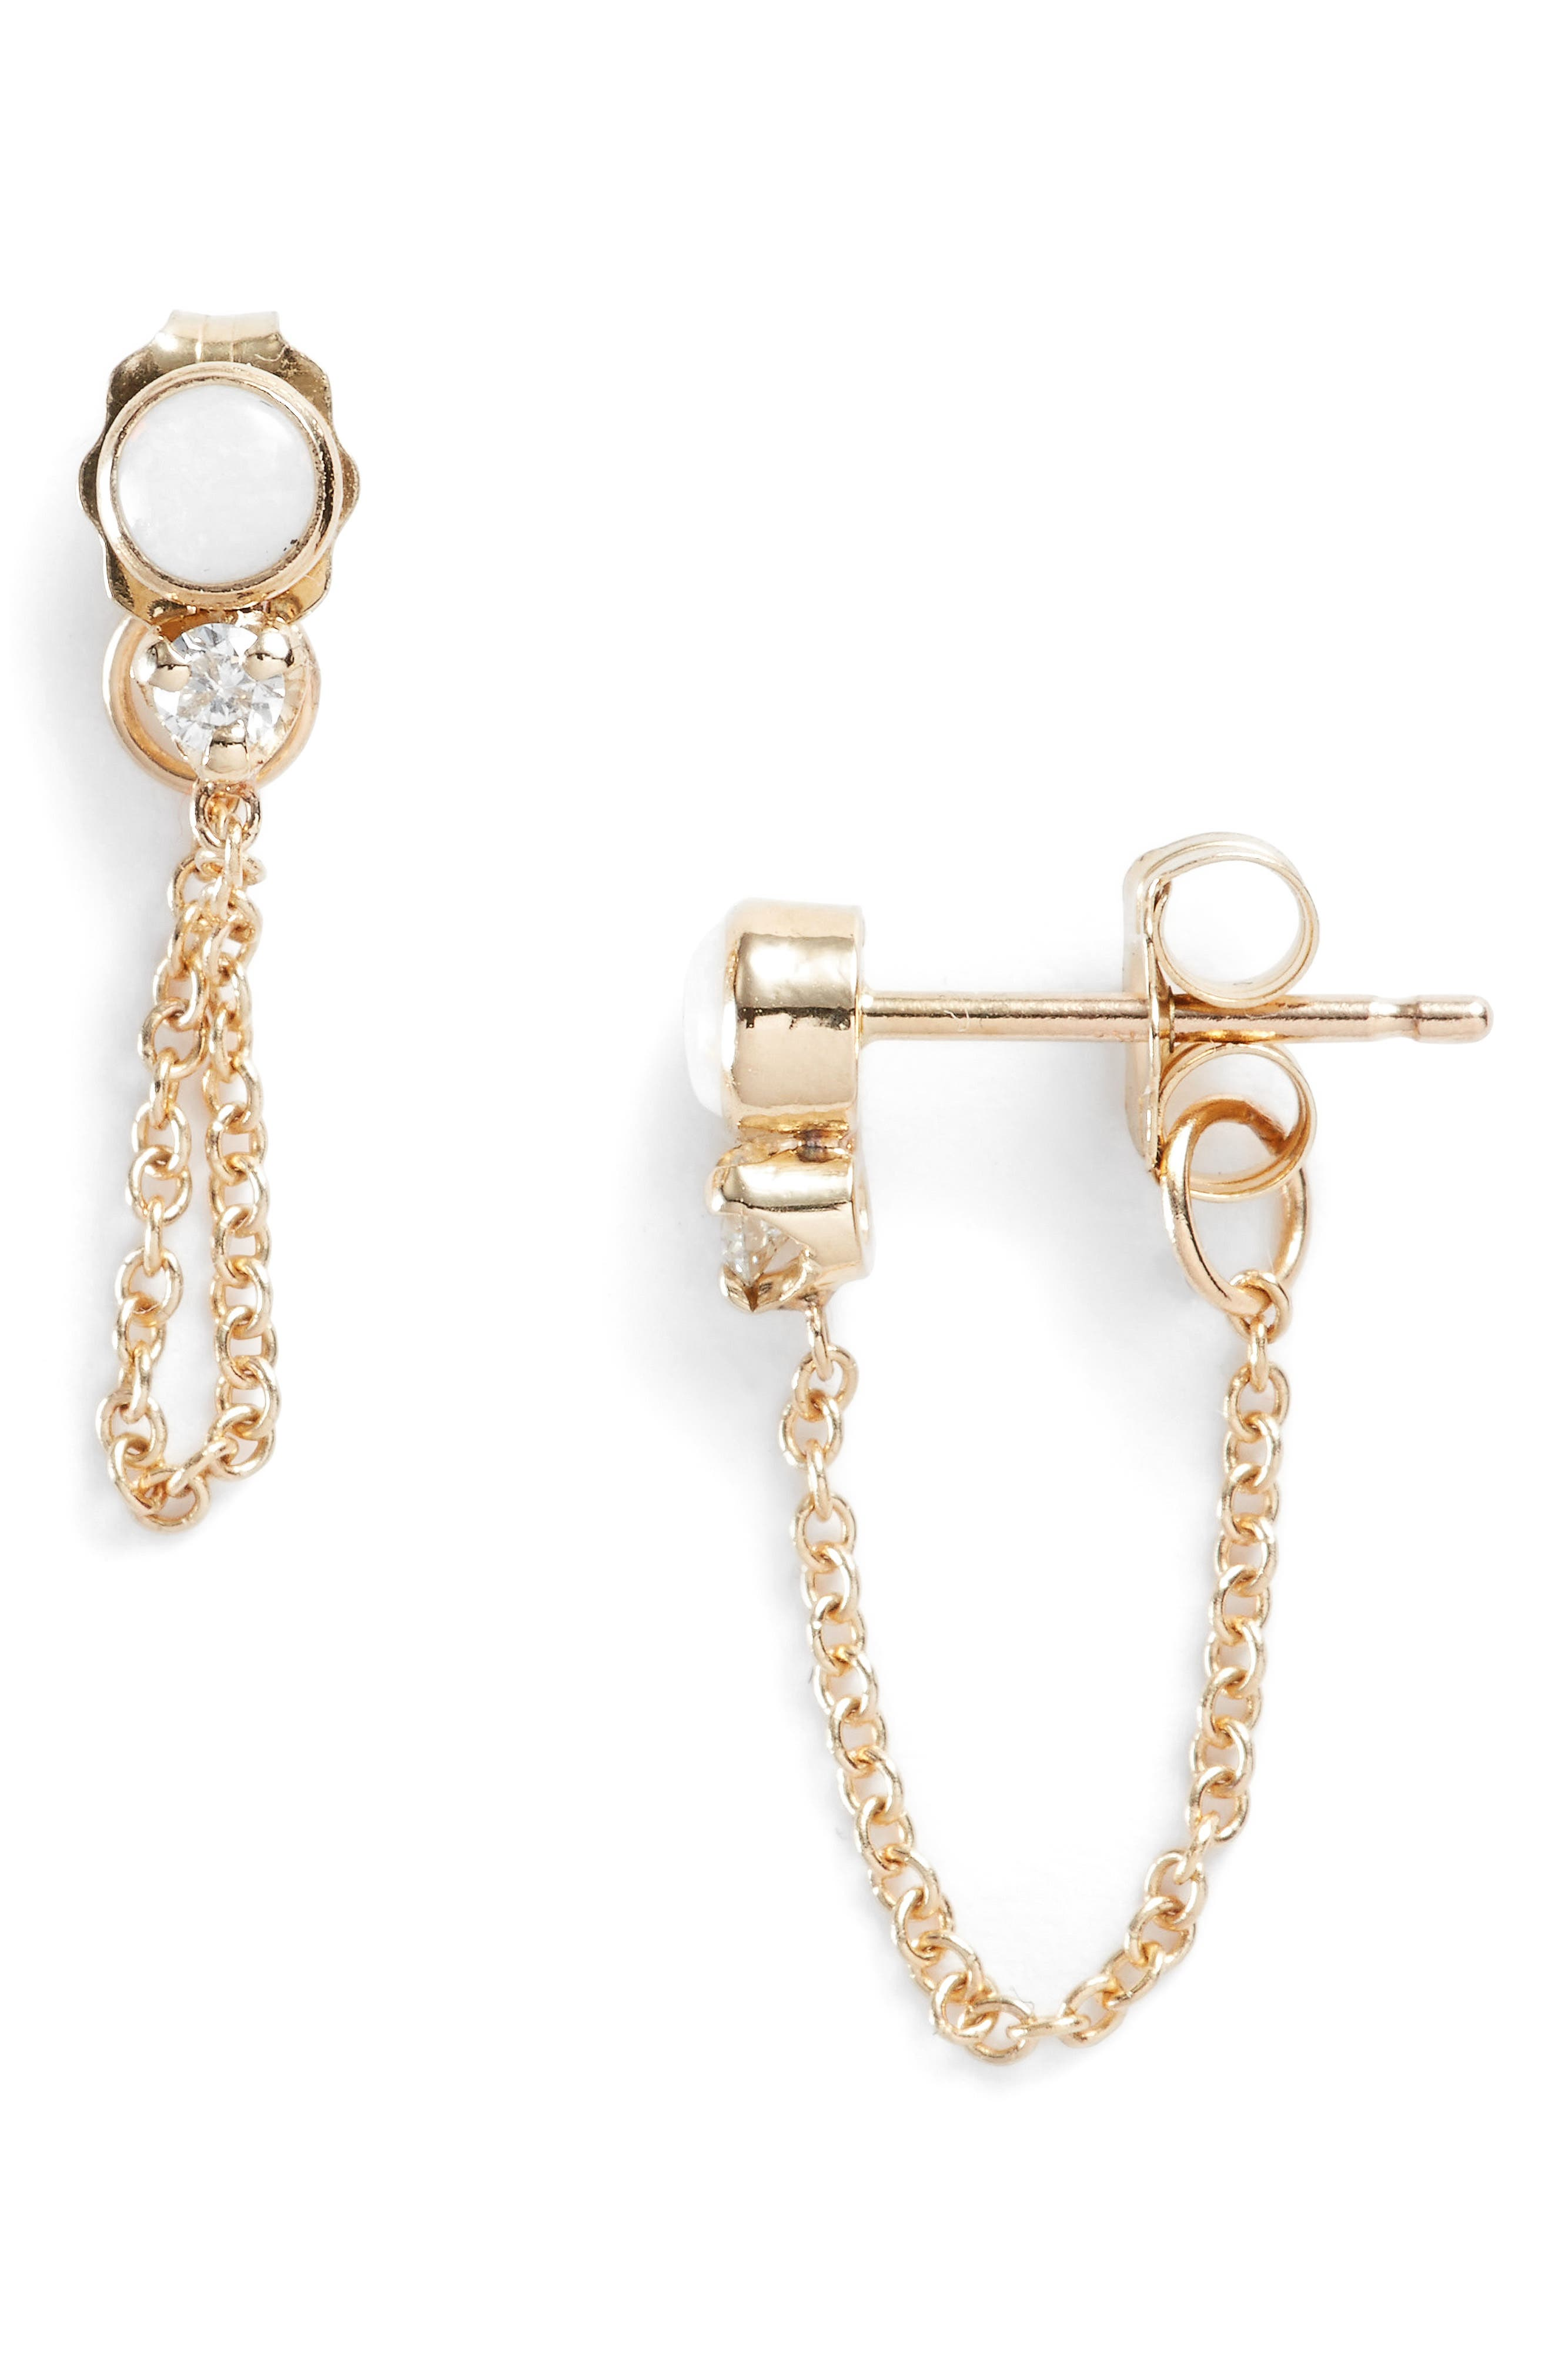 Alternate Image 1 Selected - Zoë Chicco Diamond & Opal Front Back Earrings (Nordstrom Exclusive)